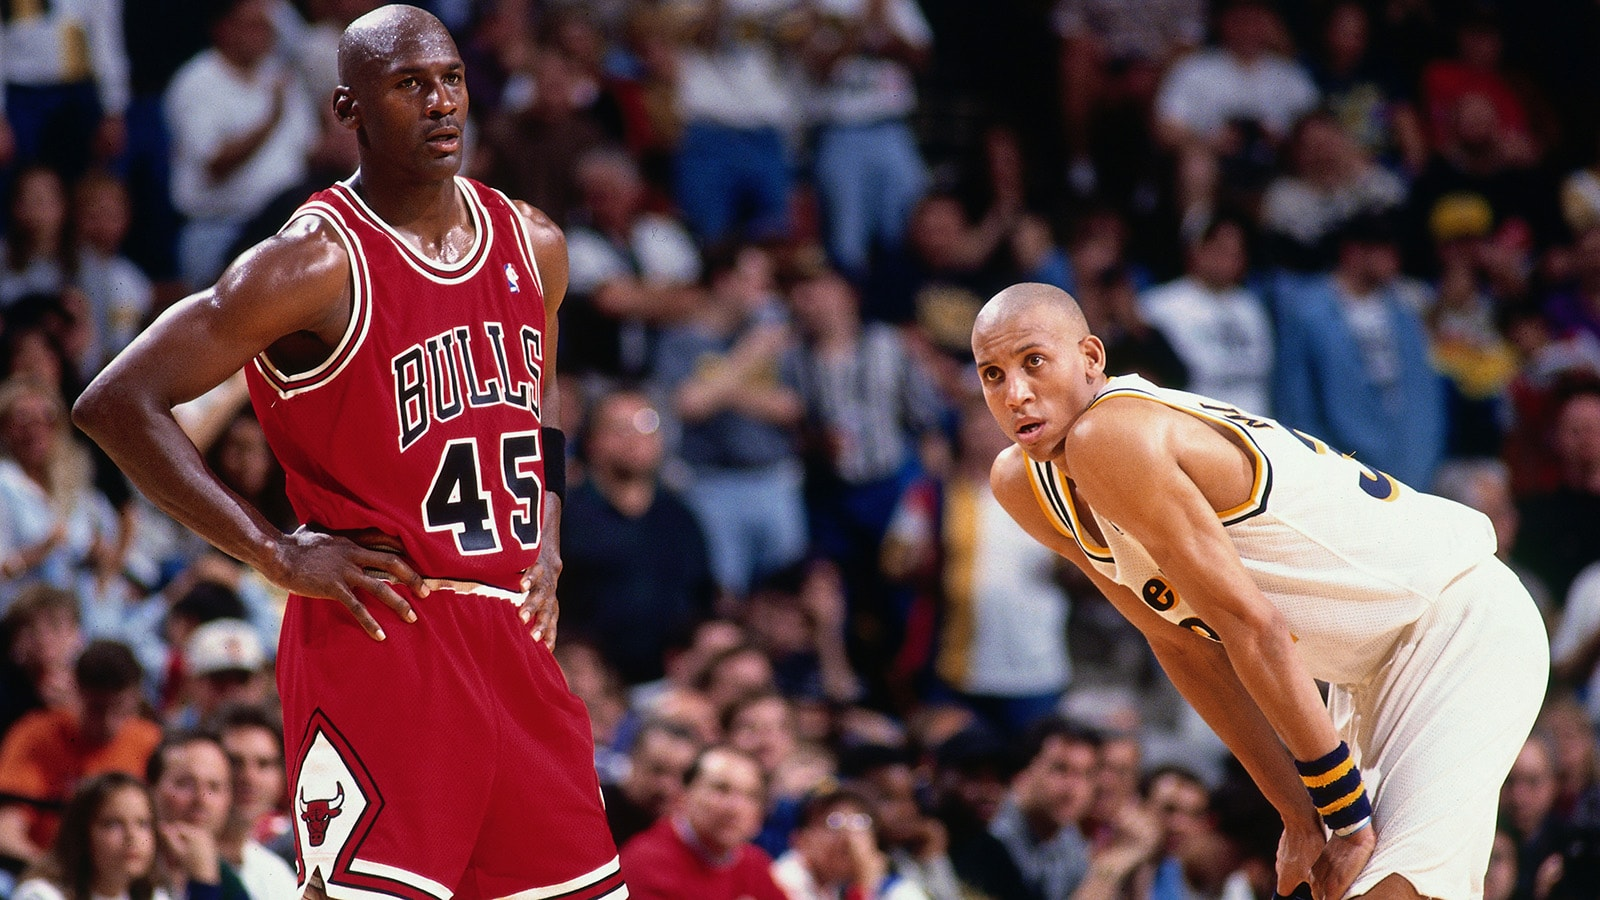 Michal Jordan and Reggie Miller